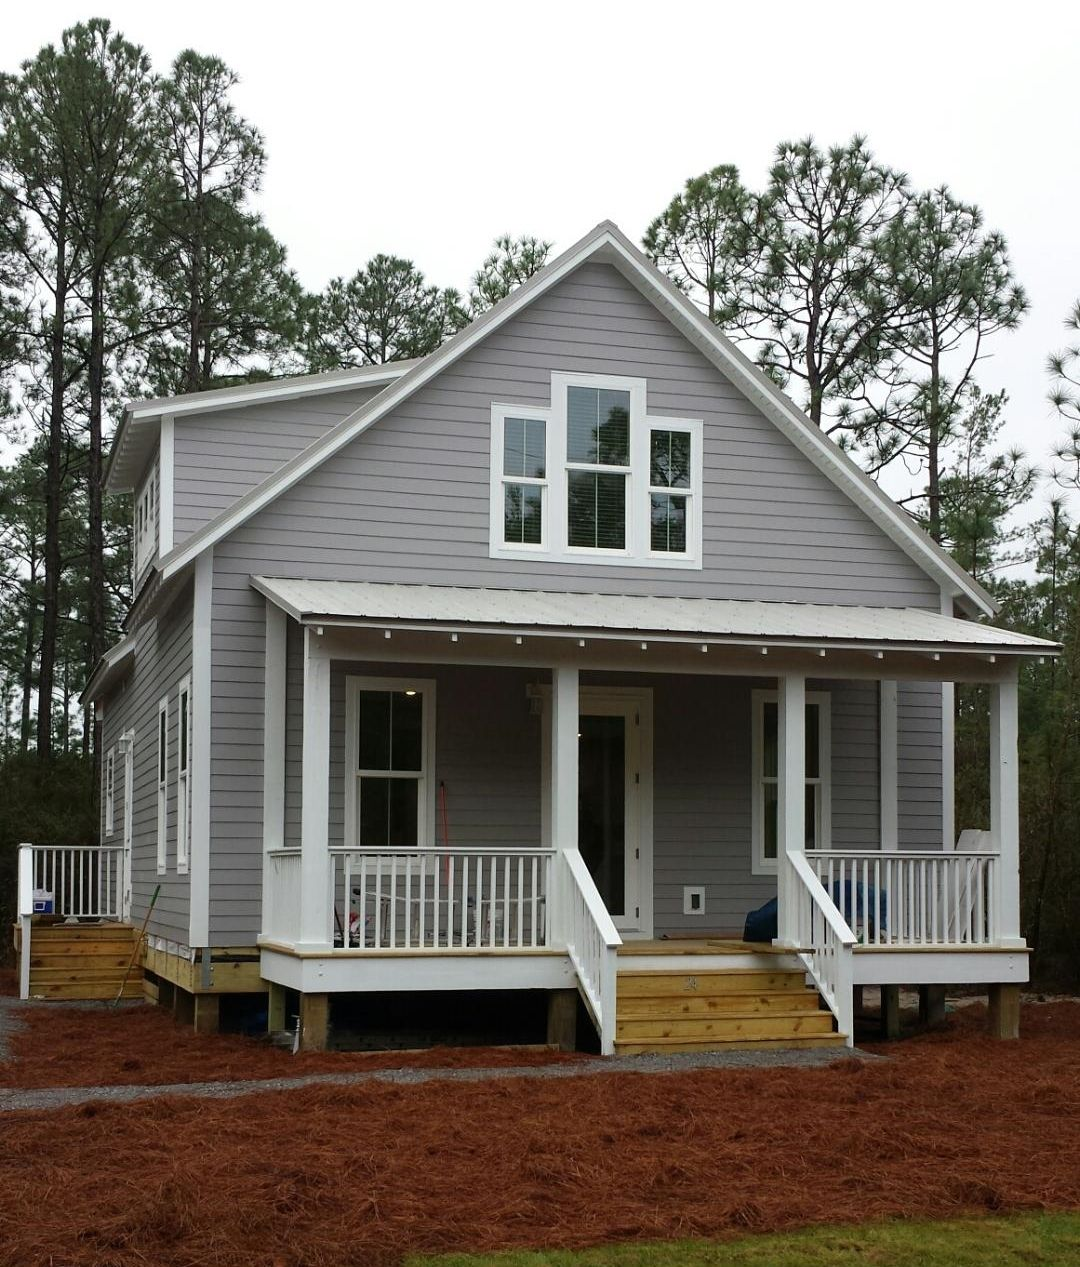 Attirant Greenbriar Modular Home Santa Rosa Beach Florida Custom Built Modular Homes  At Affinity Building Systems In